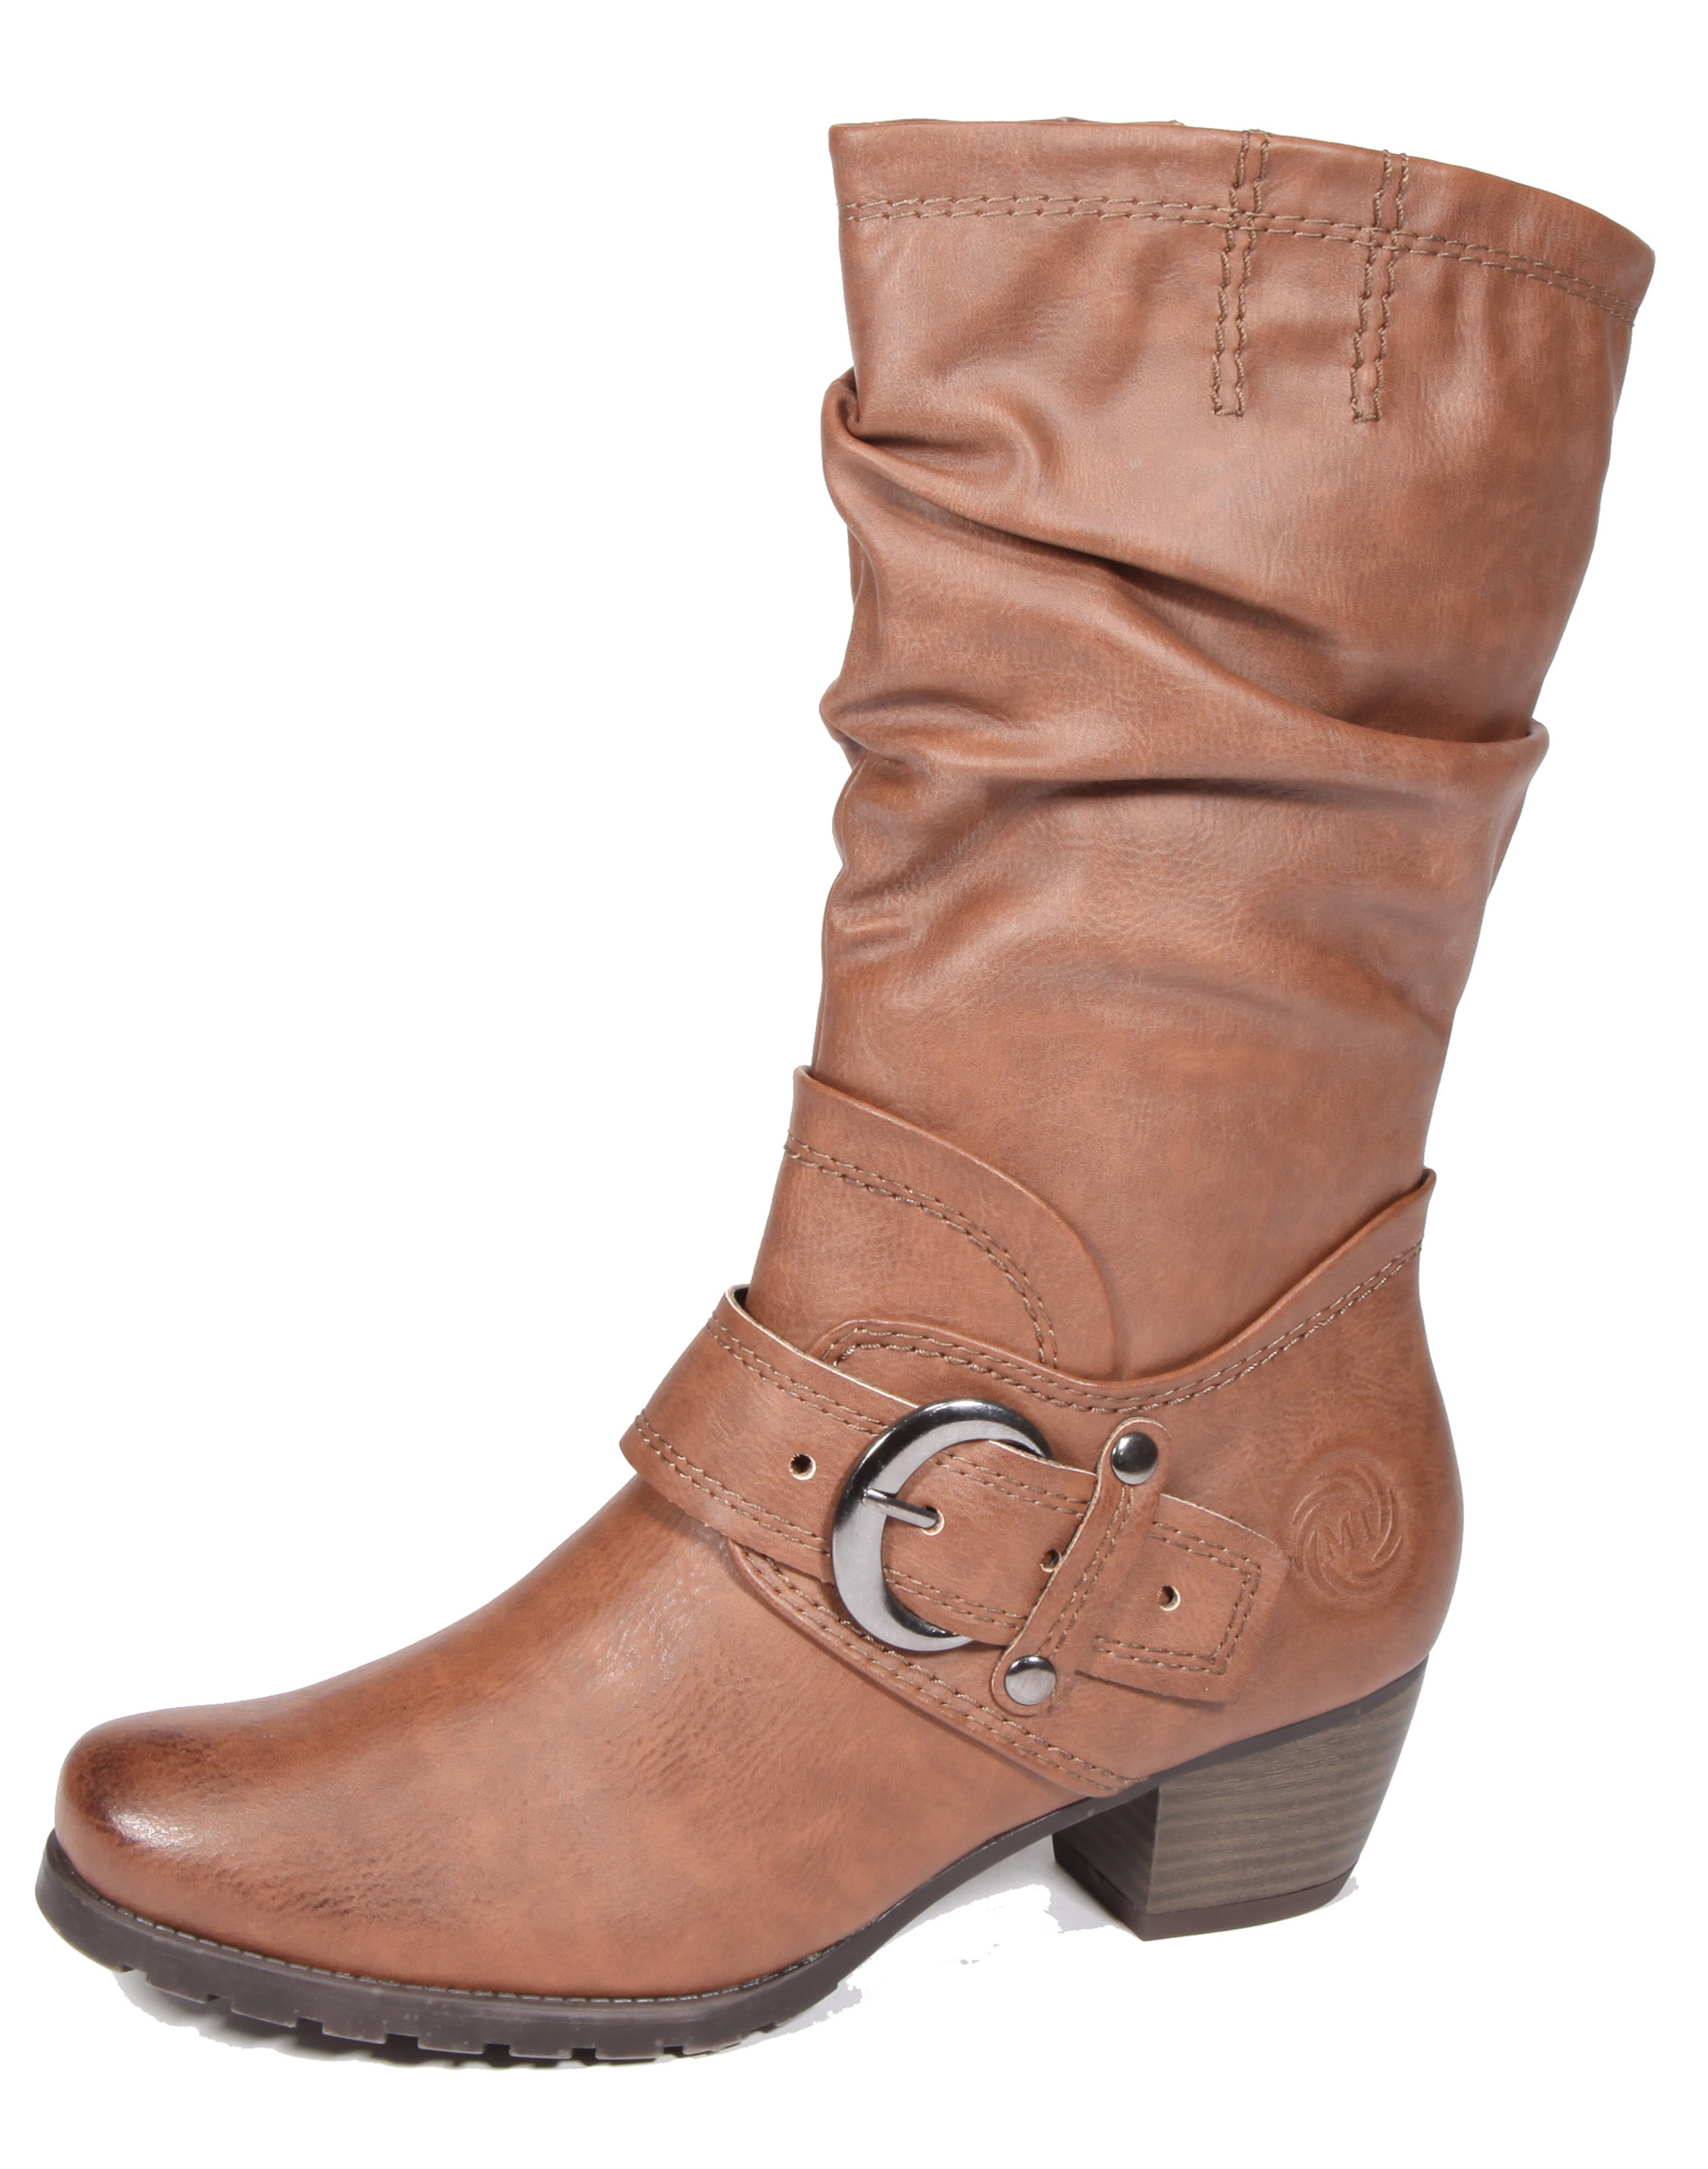 low priced e5a69 96f47 Marco Tozzi Stiefel muscat